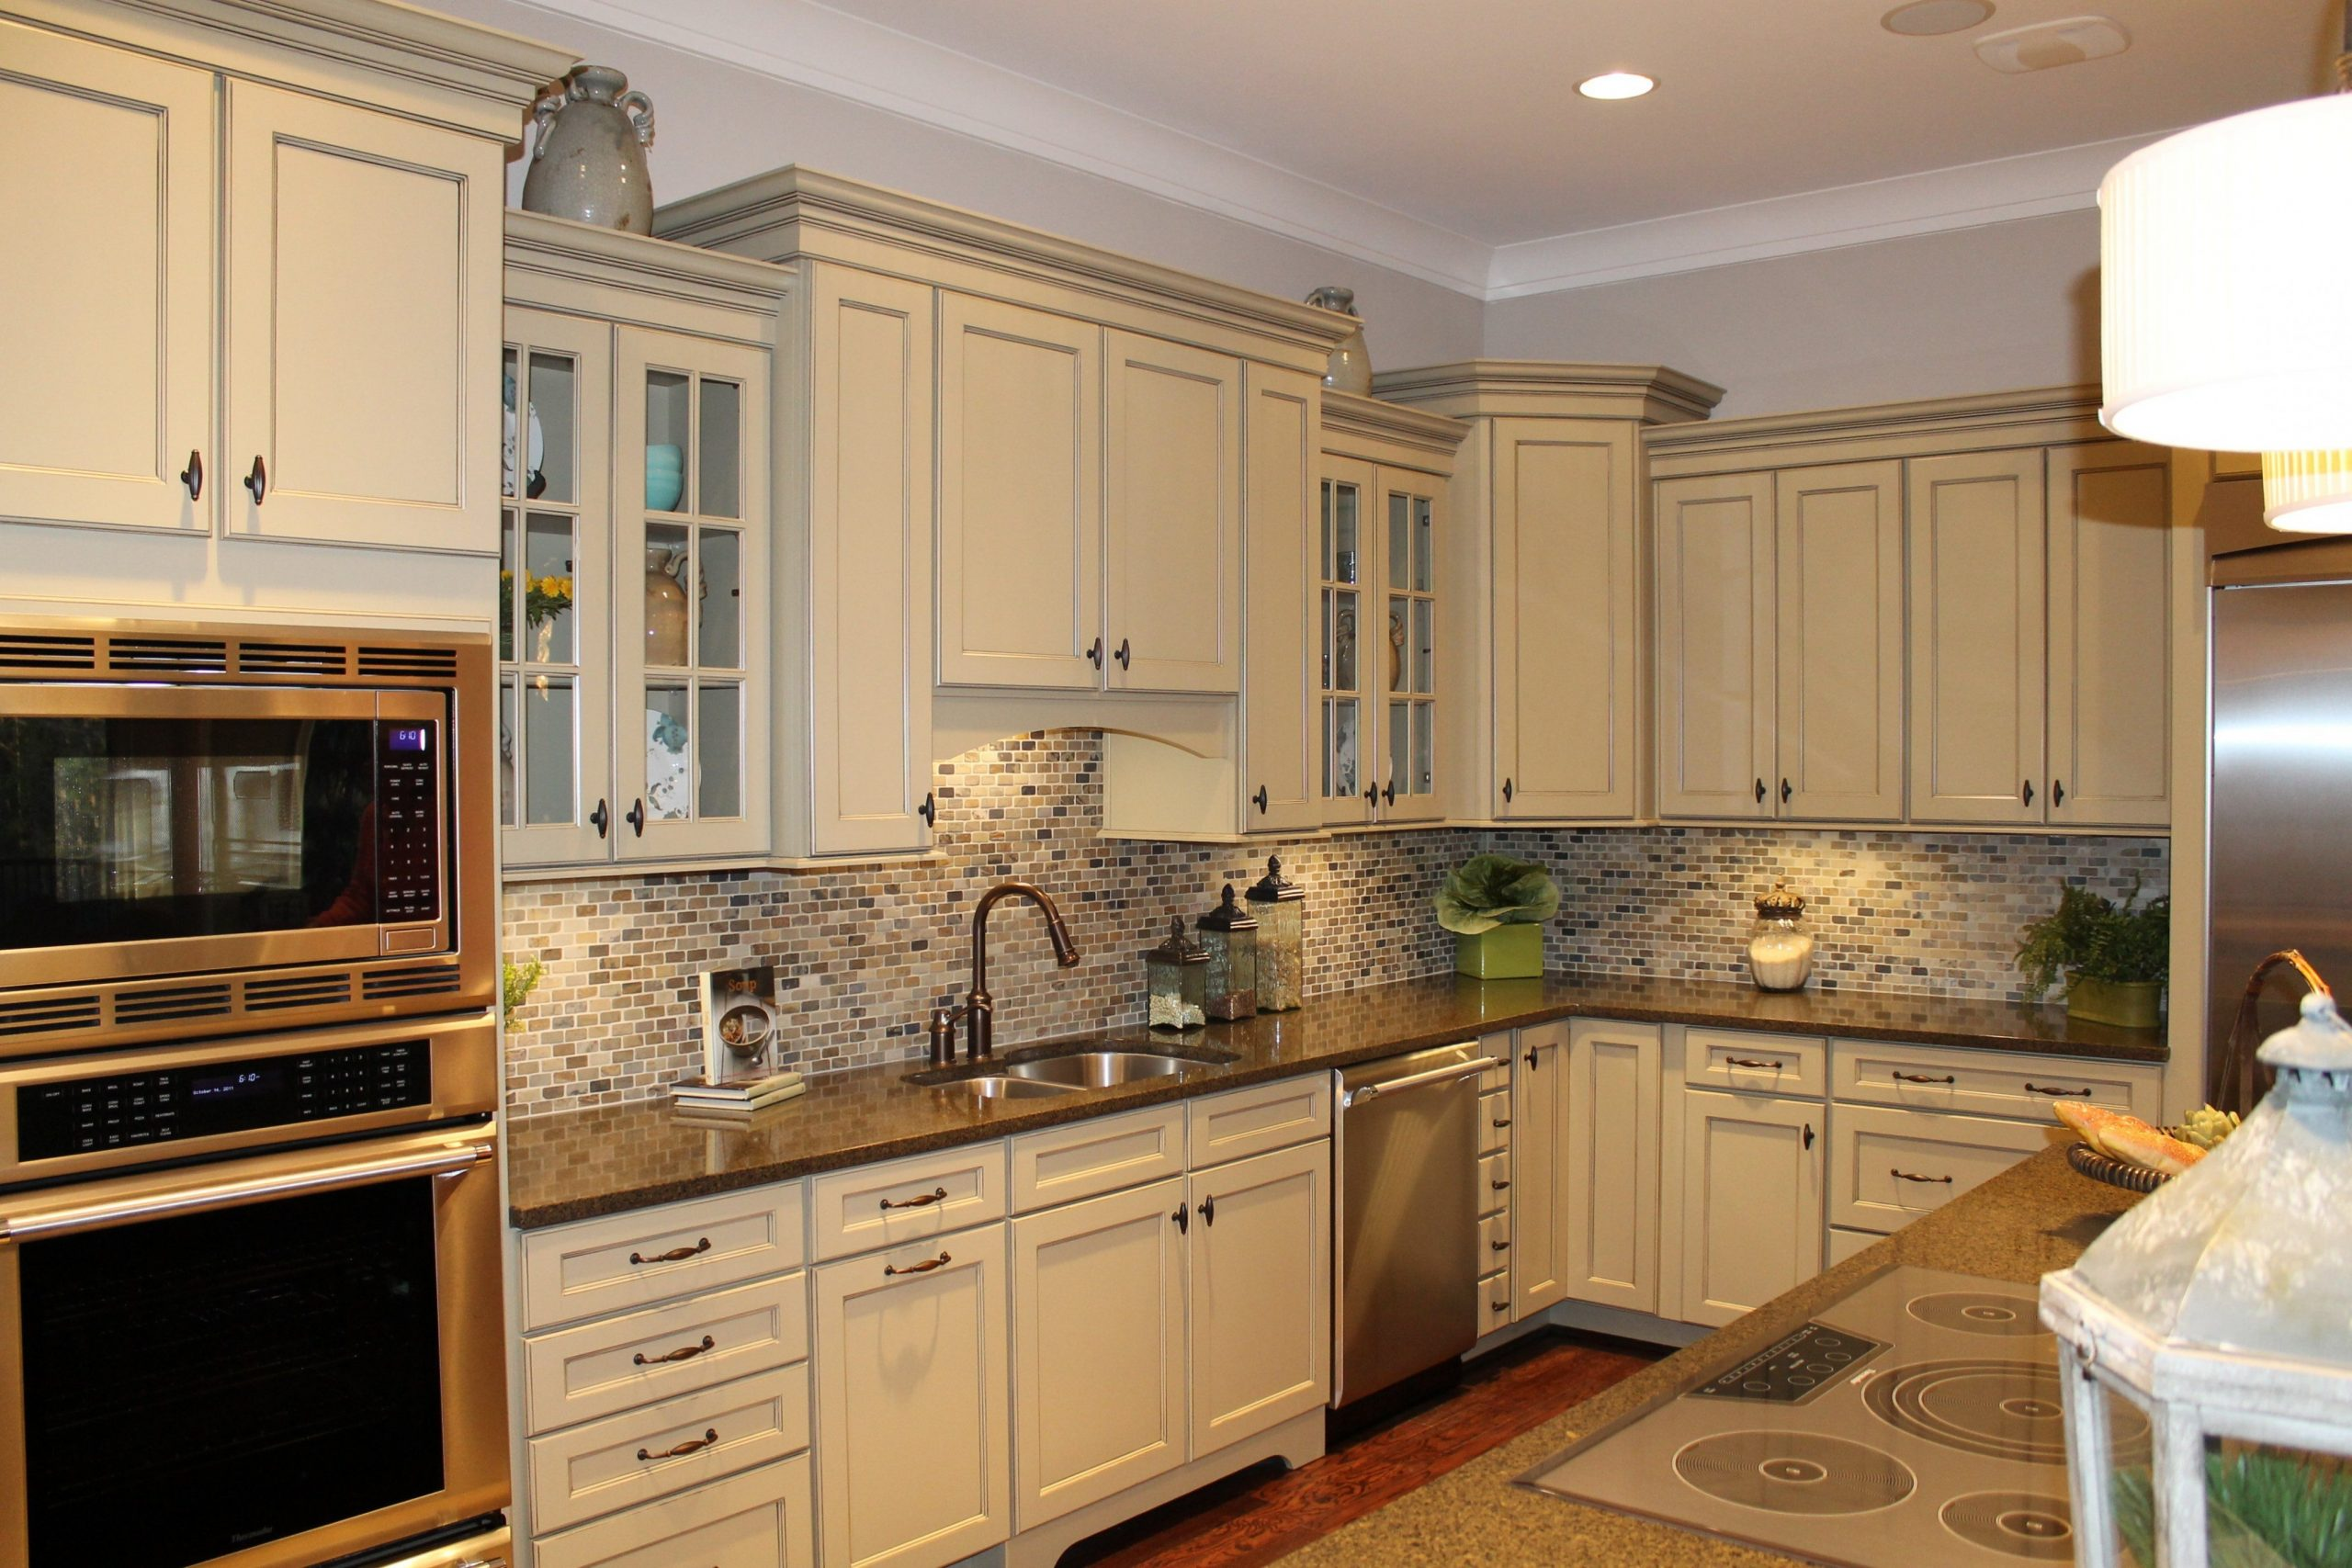 cool white kitchen cabinets ideas for countertops and backsplash  - Antique White Kitchen Cabinets With Granite Countertops